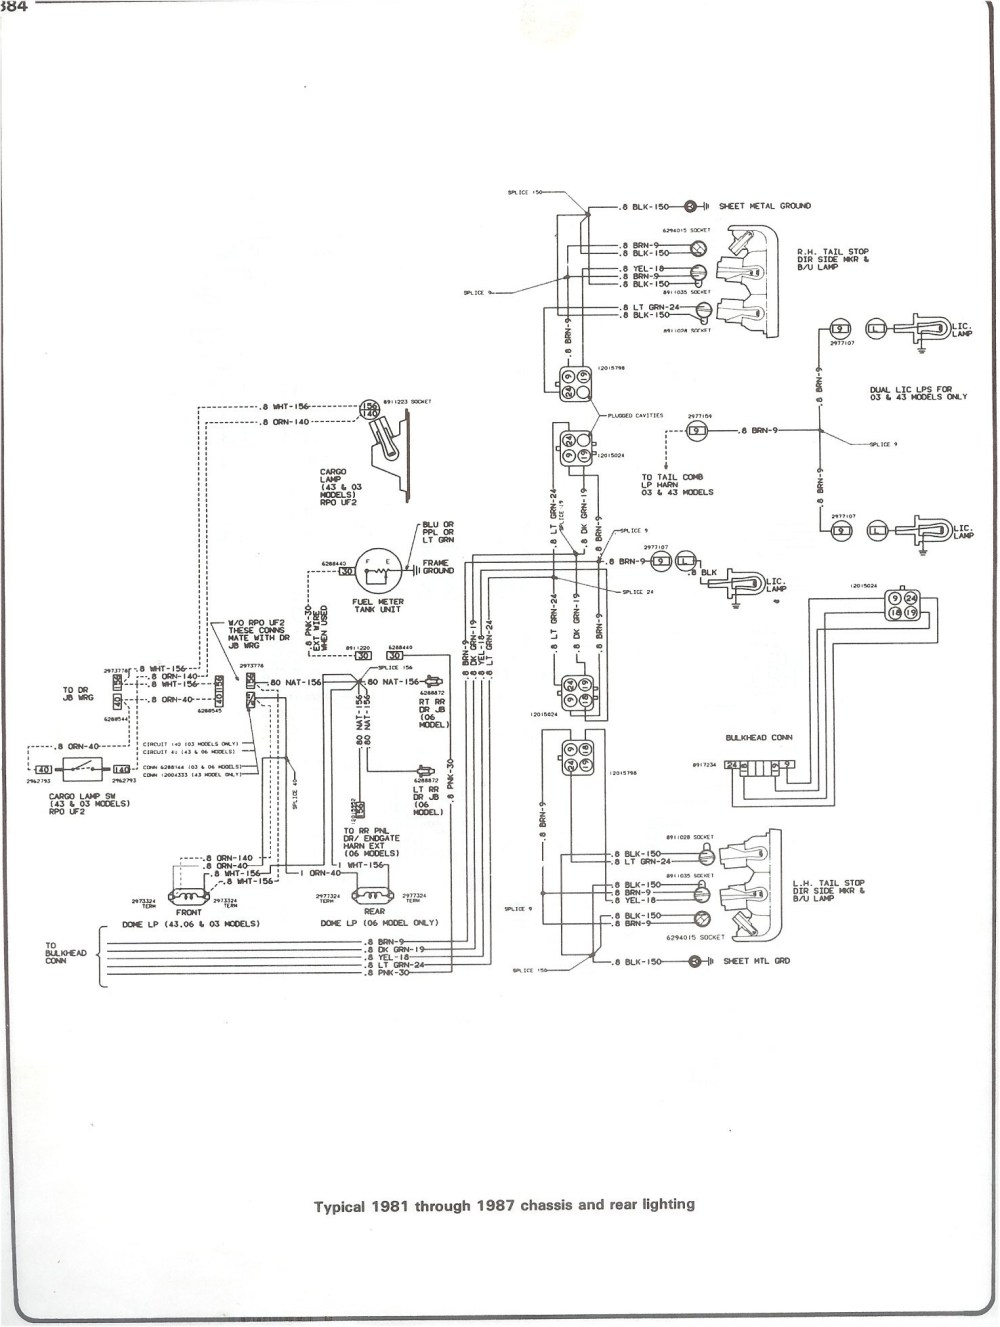 medium resolution of 1986 chevy truck fuse box diagram 87 chevy wiring diagram in addition mitsubishi galant fuse box